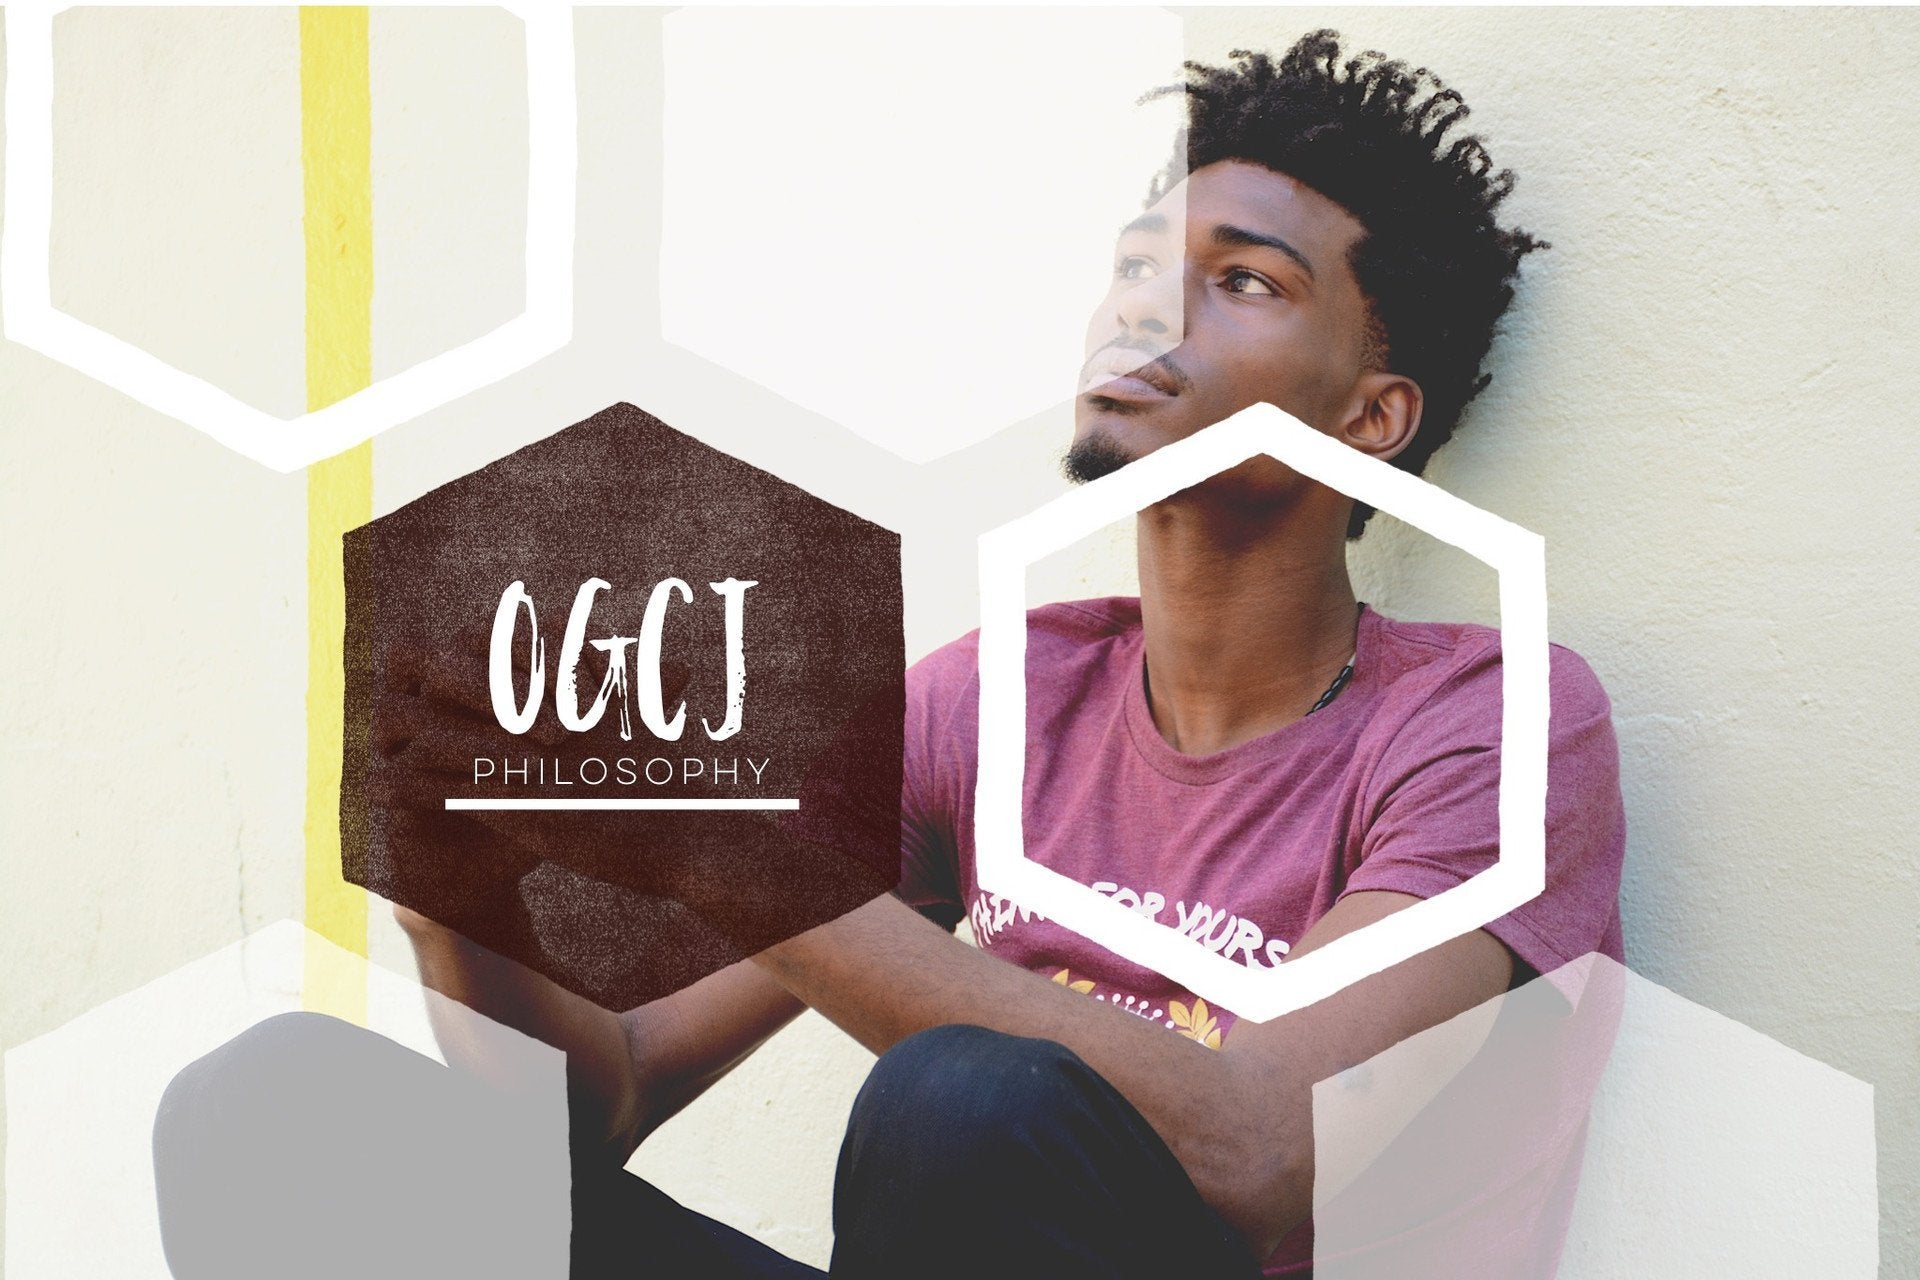 OGCJ - Only God Can Judge Streetwear Clothing Company; our philosophy